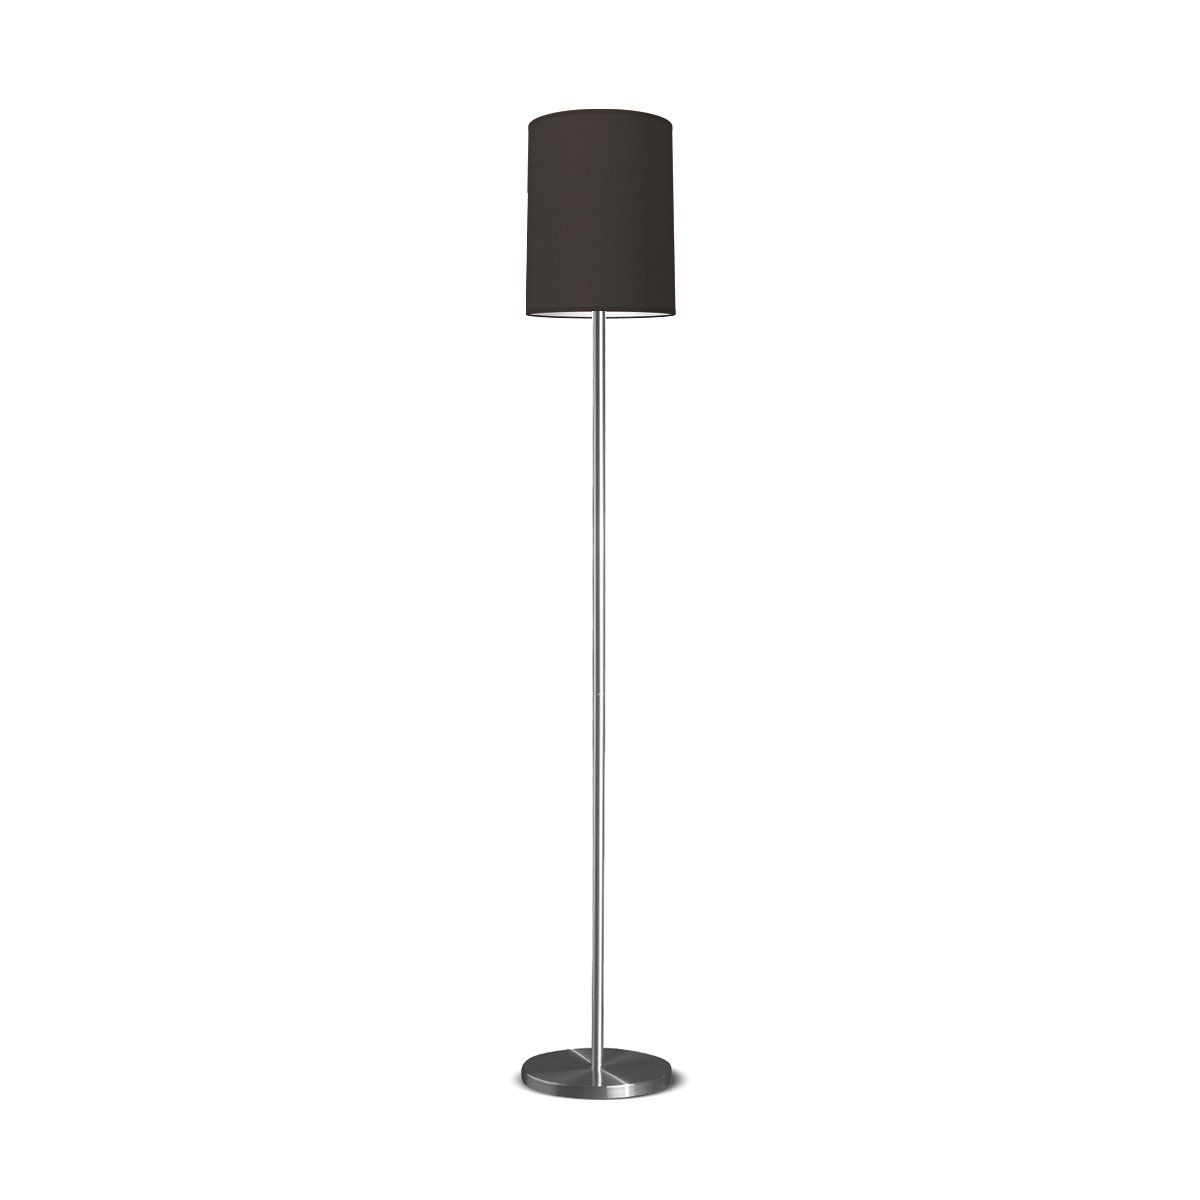 HOME SWEET HOME vloerlamp mauro tube Ø 30 cm - Night black